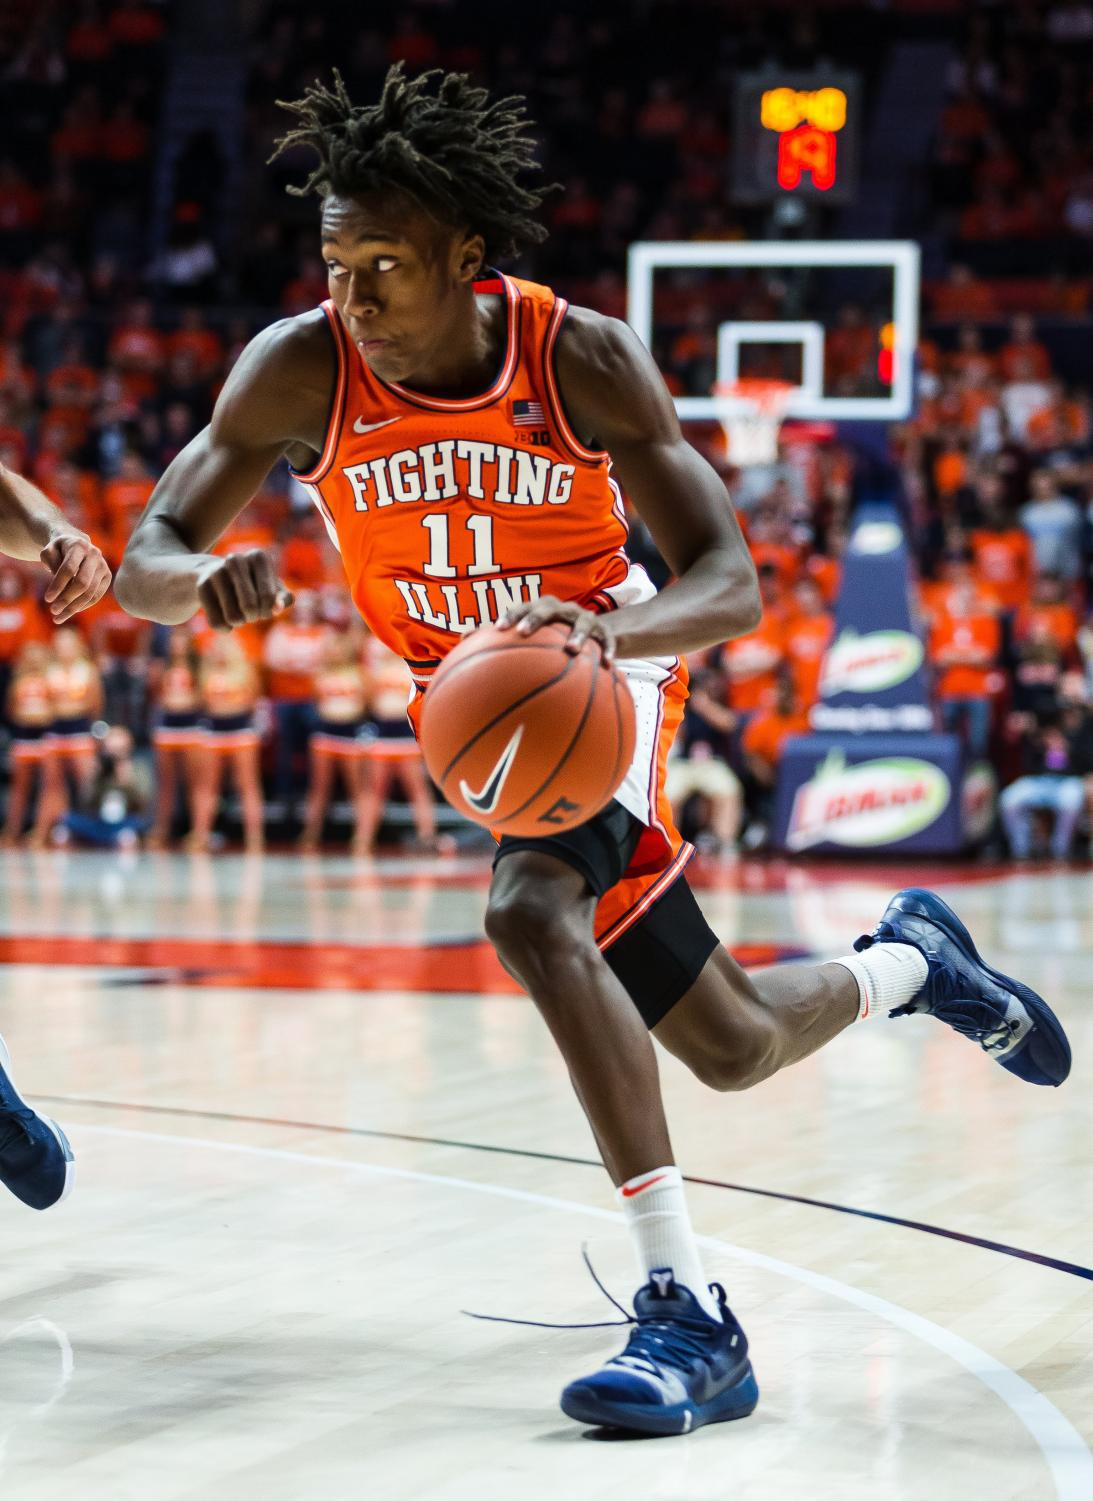 Sophomore Ayo Dosunmu dribbles toward the basket during Illinois' game against Old Dominion at the State Farm Center on Dec. 14. Captured at the State Farm Center on 14 Dec. 2019 by Jonathan Bonaguro.